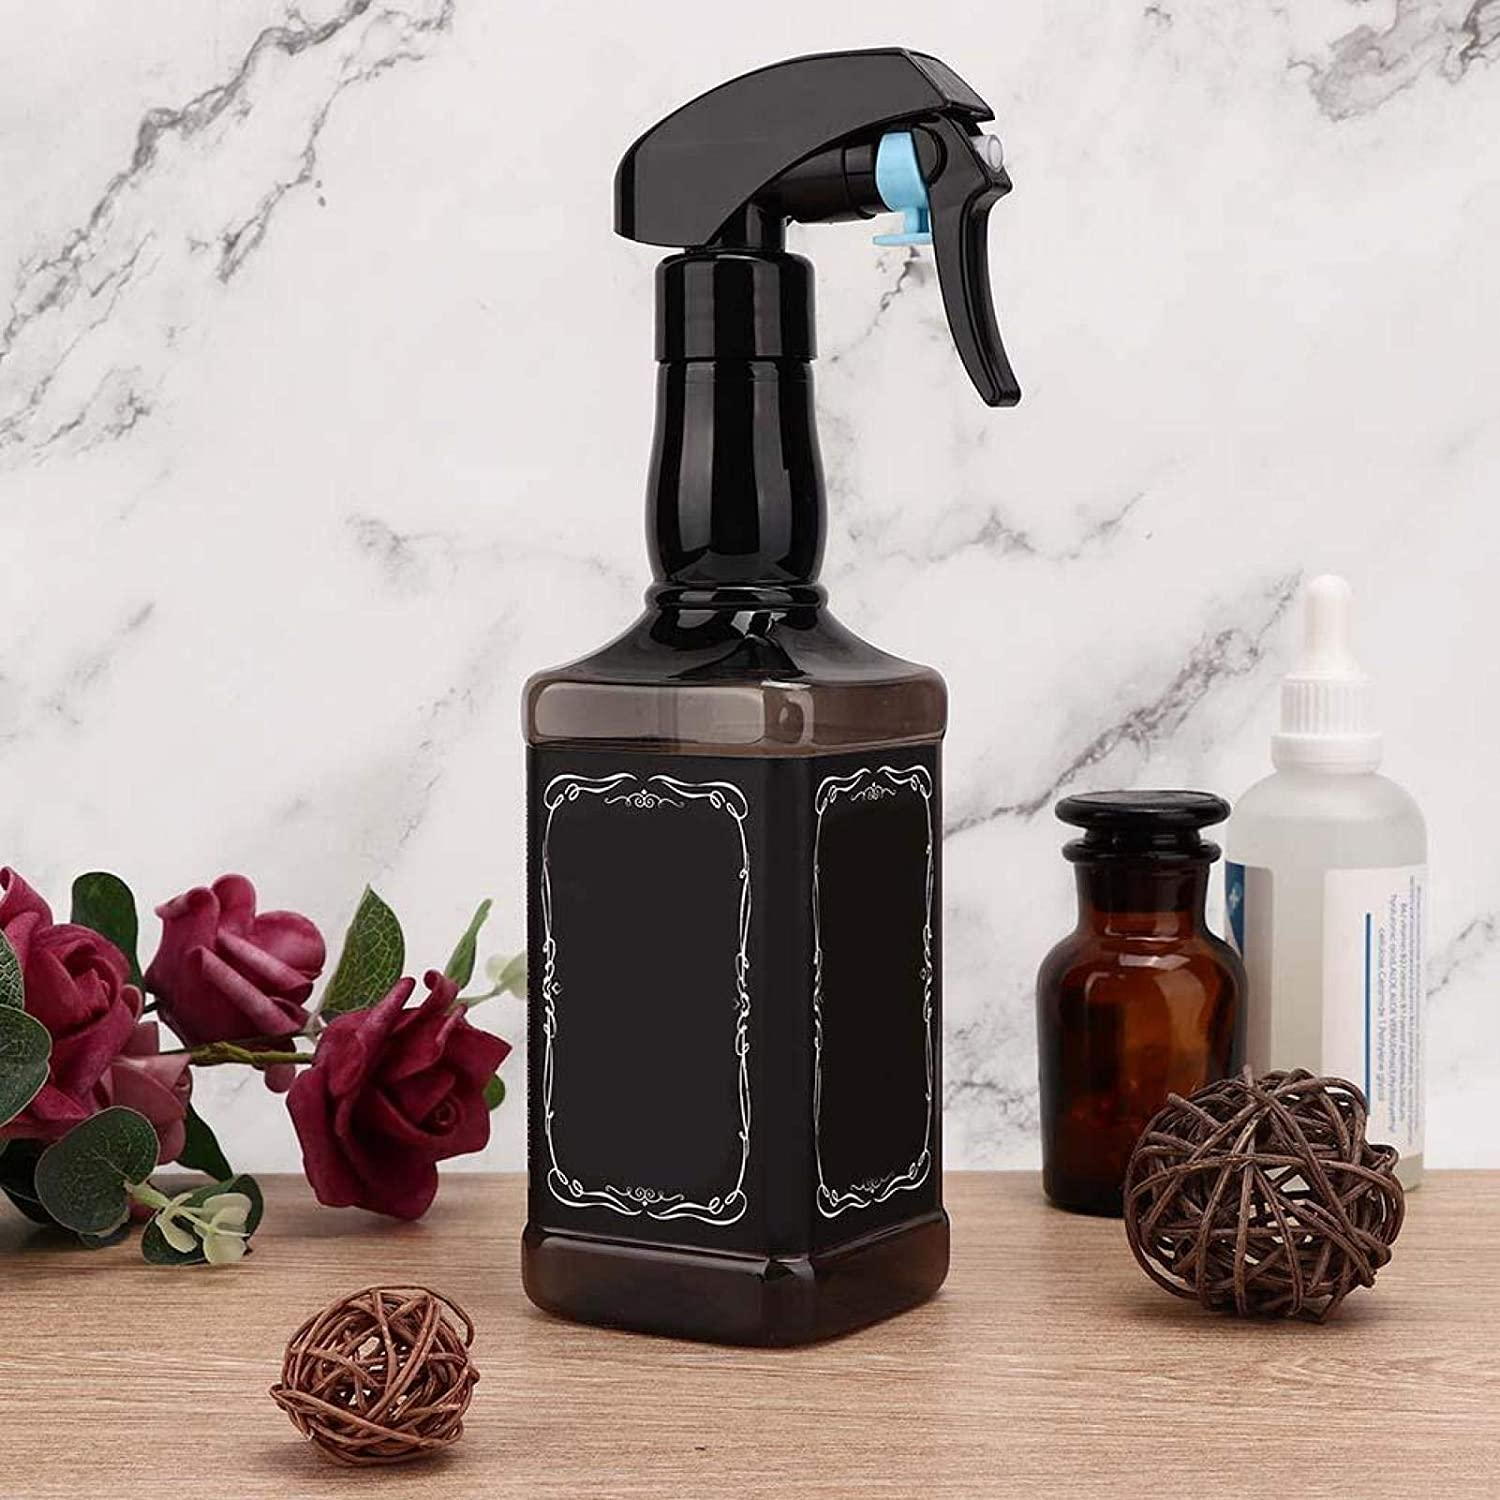 Qqmora 500ml Hairdressing shipfree specialty shop Water Refillable Sprayer Barber Empty